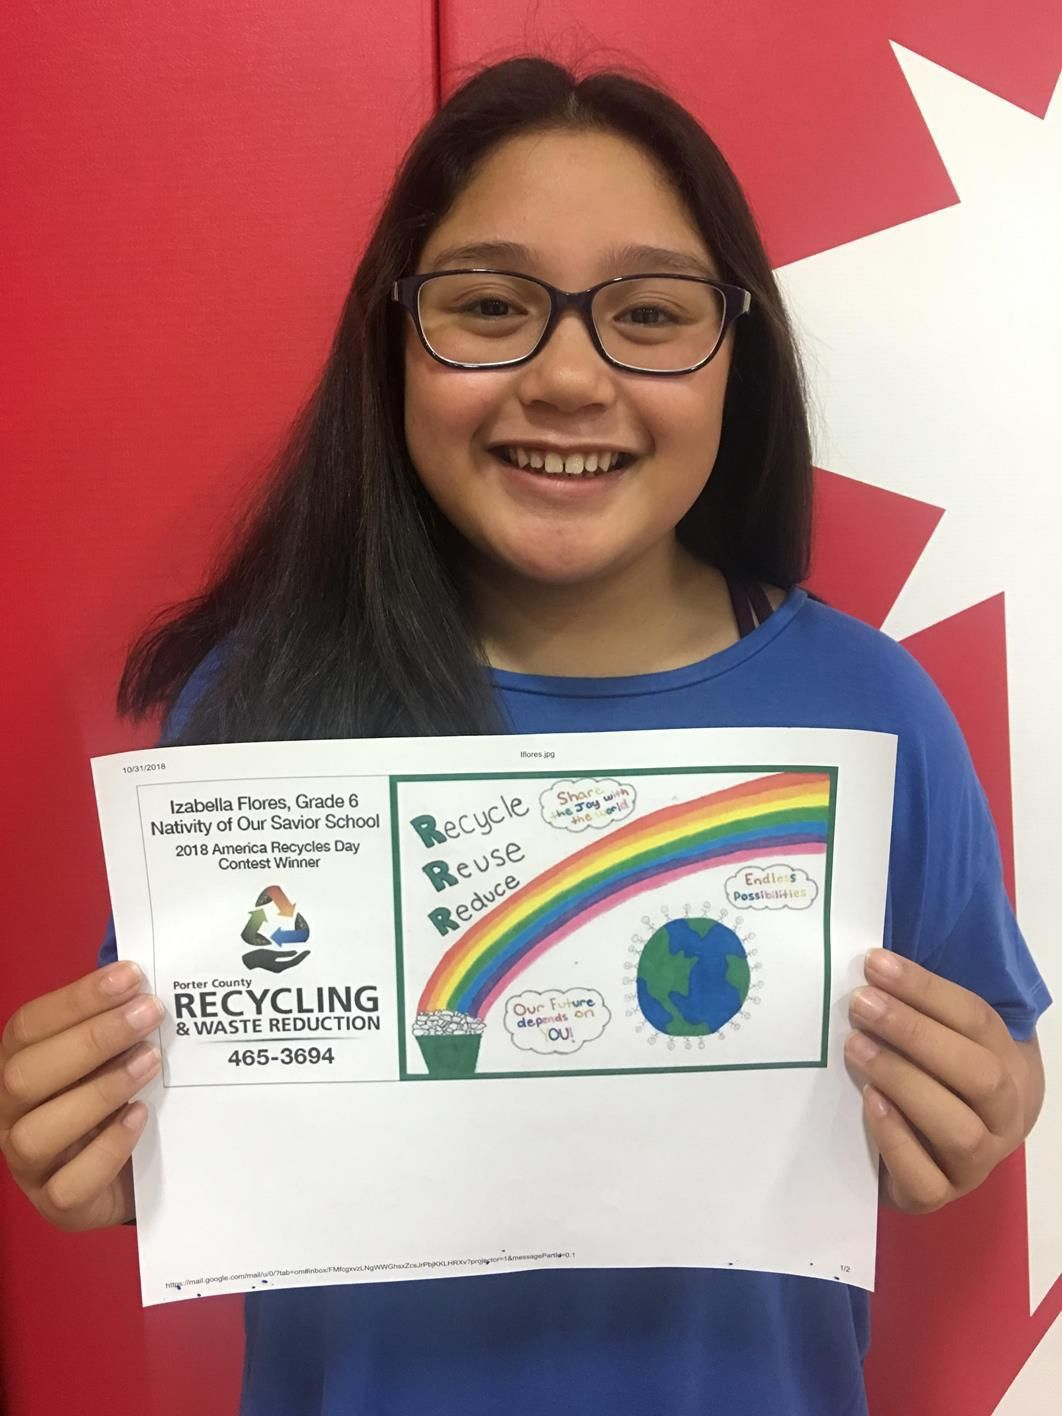 Students' art featured on billboards to promote recycling